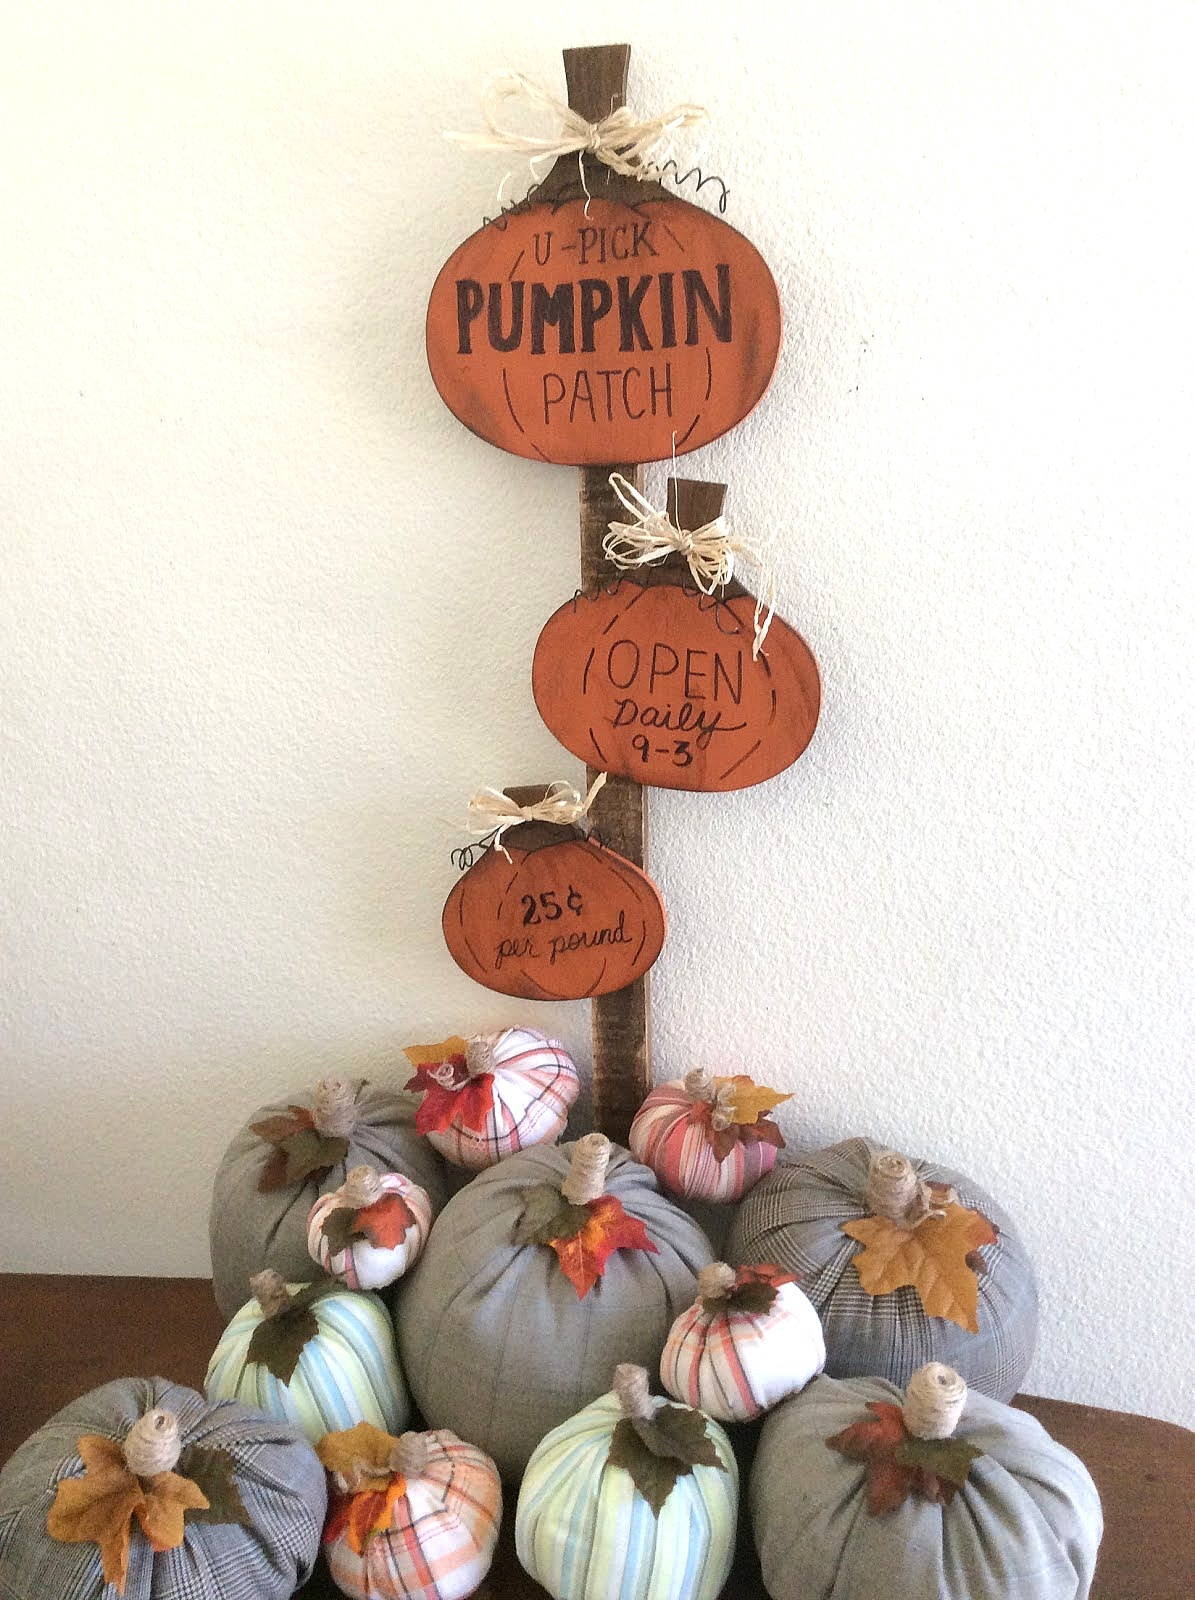 Pumpkin patch trivet signs by Fresh Vintage By Lisa, featured on Funky Junk Interiors